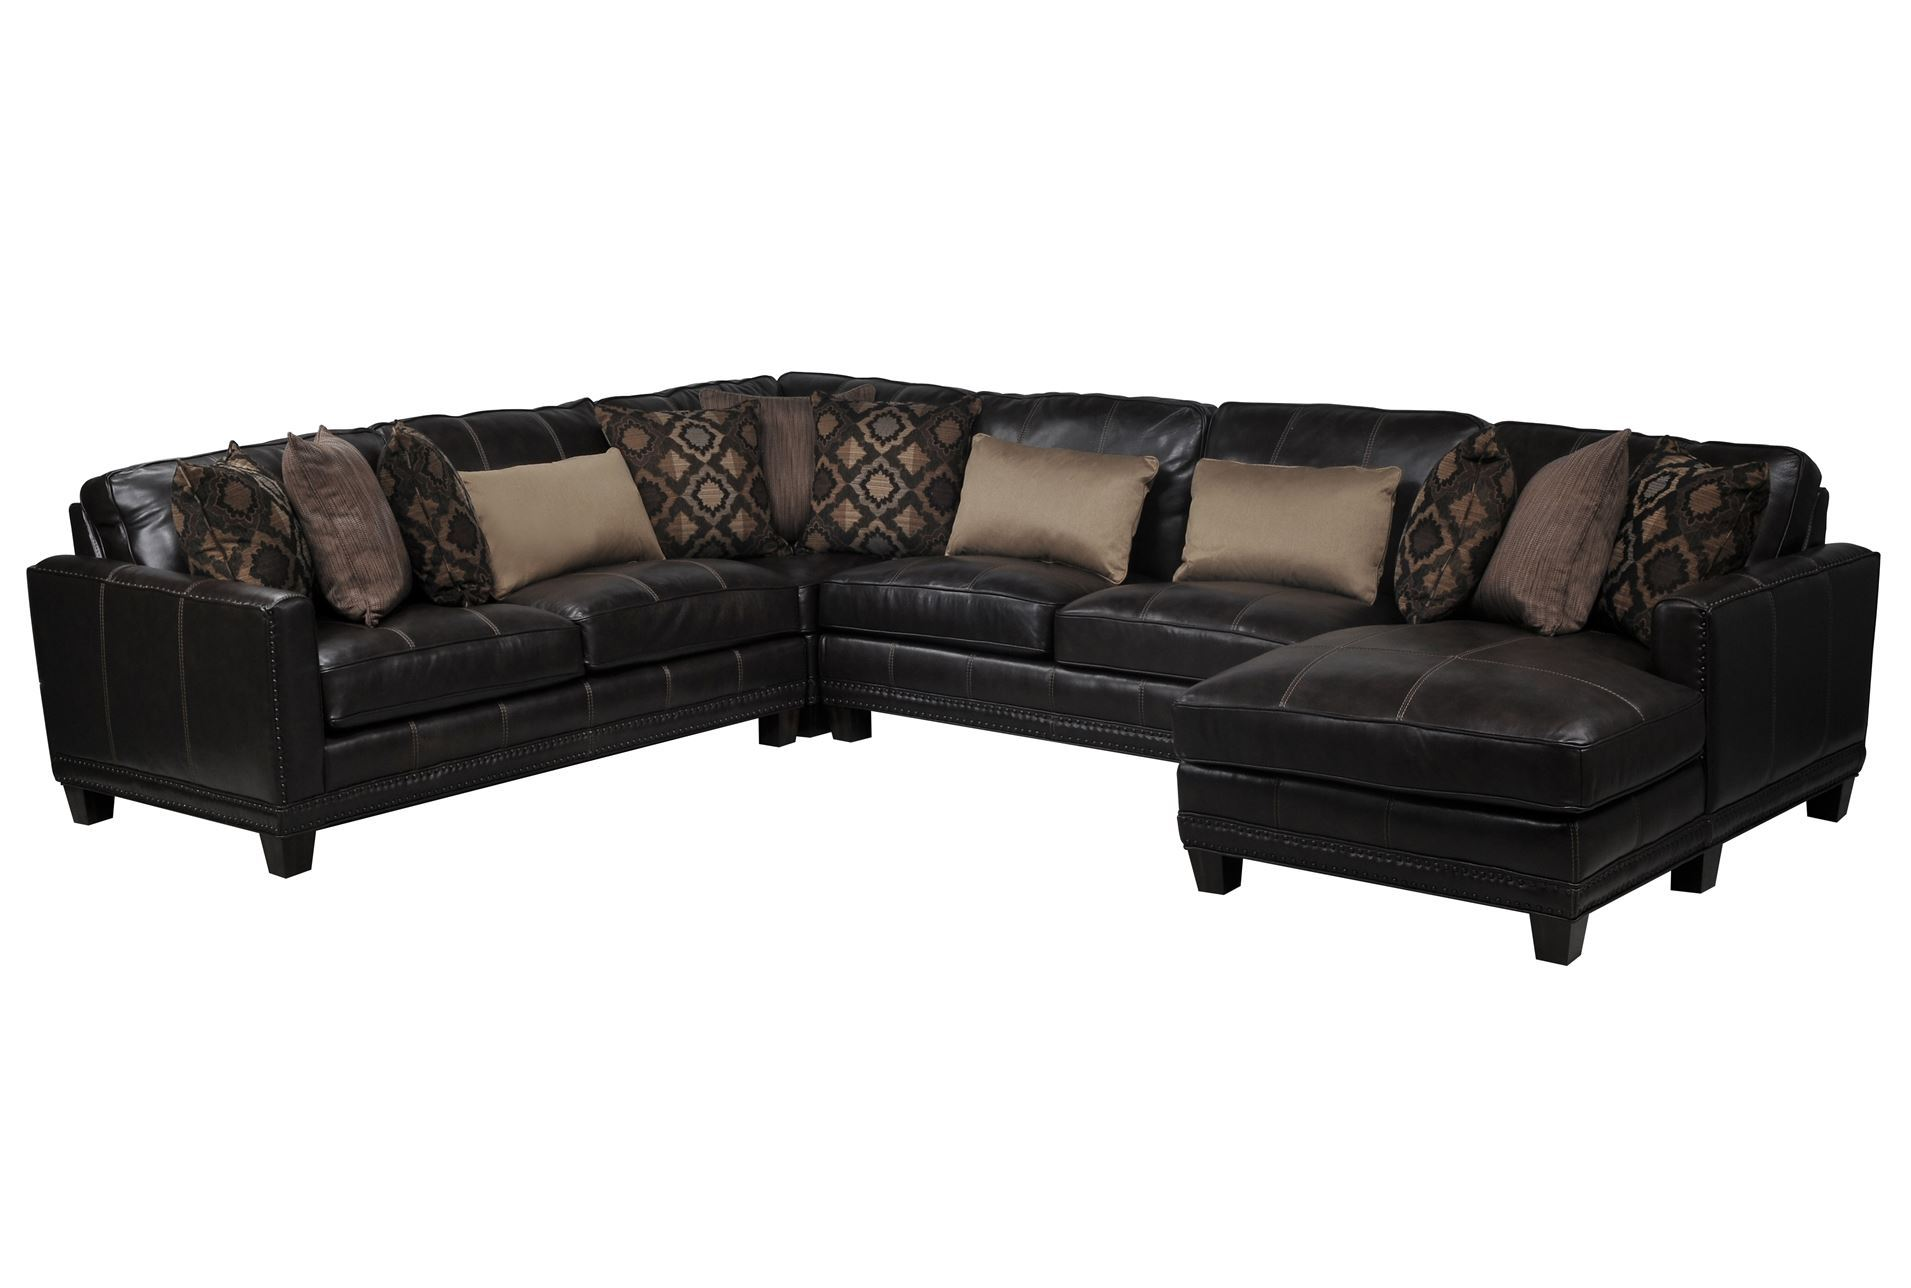 Barnaby 4 piece sectional w raf chaise living spaces for 4 piece sectional with chaise